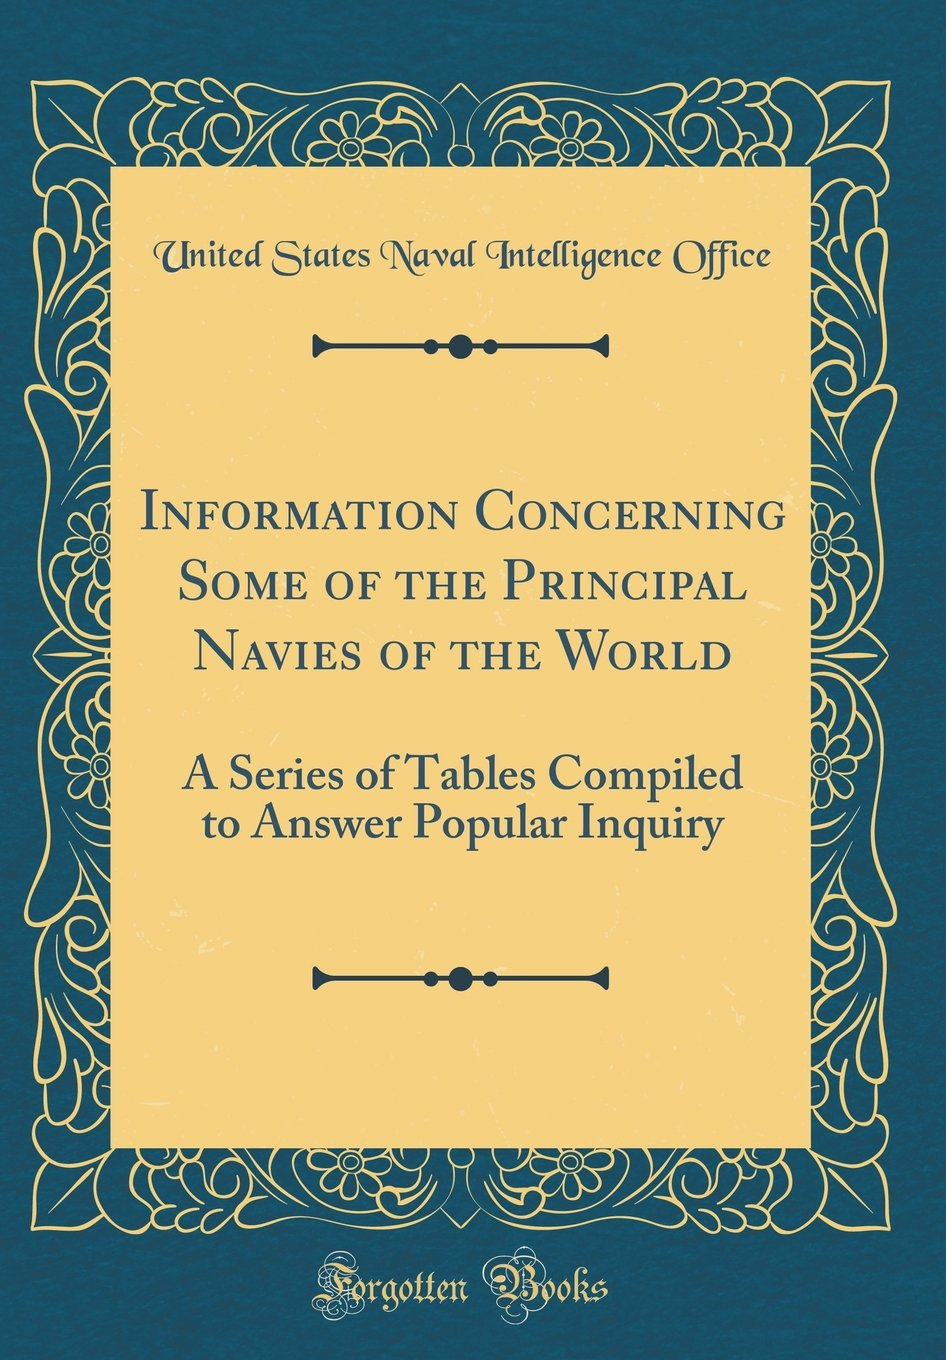 Information Concerning Some of the Principal Navies of the World: A Series of Tables Compiled to Answer Popular Inquiry (Classic Reprint) pdf epub